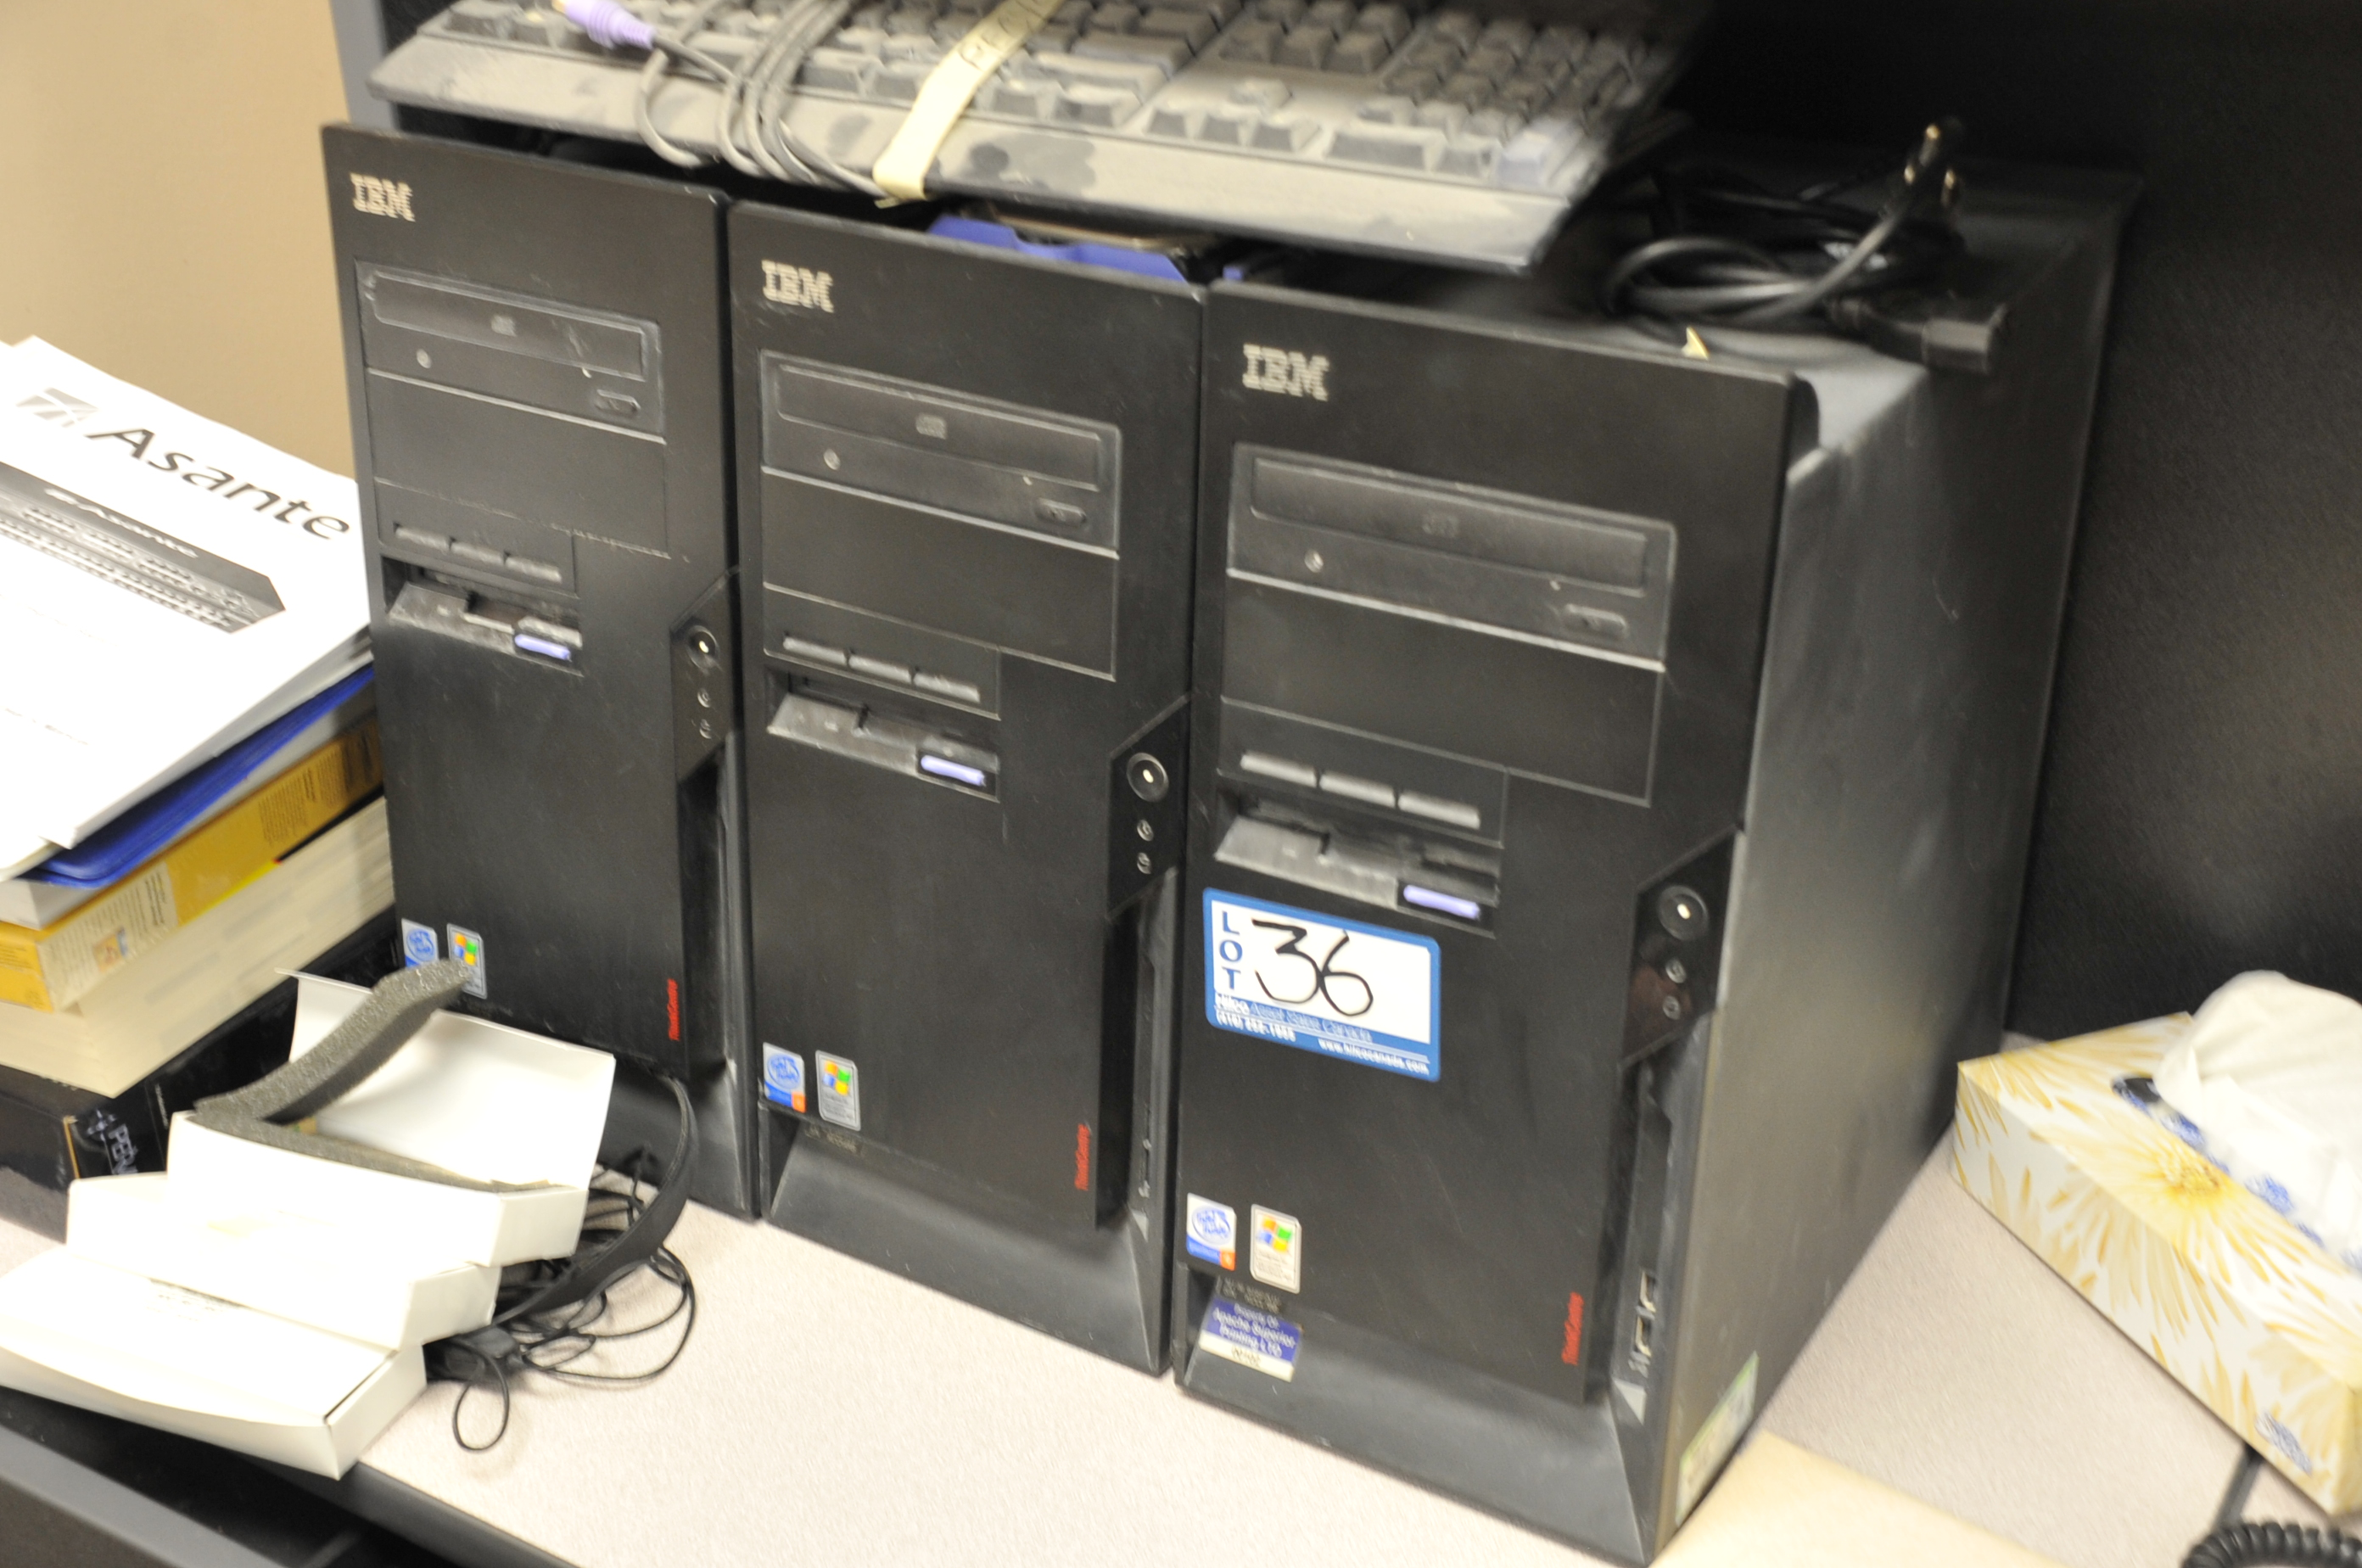 Lot of (3) IBM Model P4 Computer; with (3) Samsung Printers